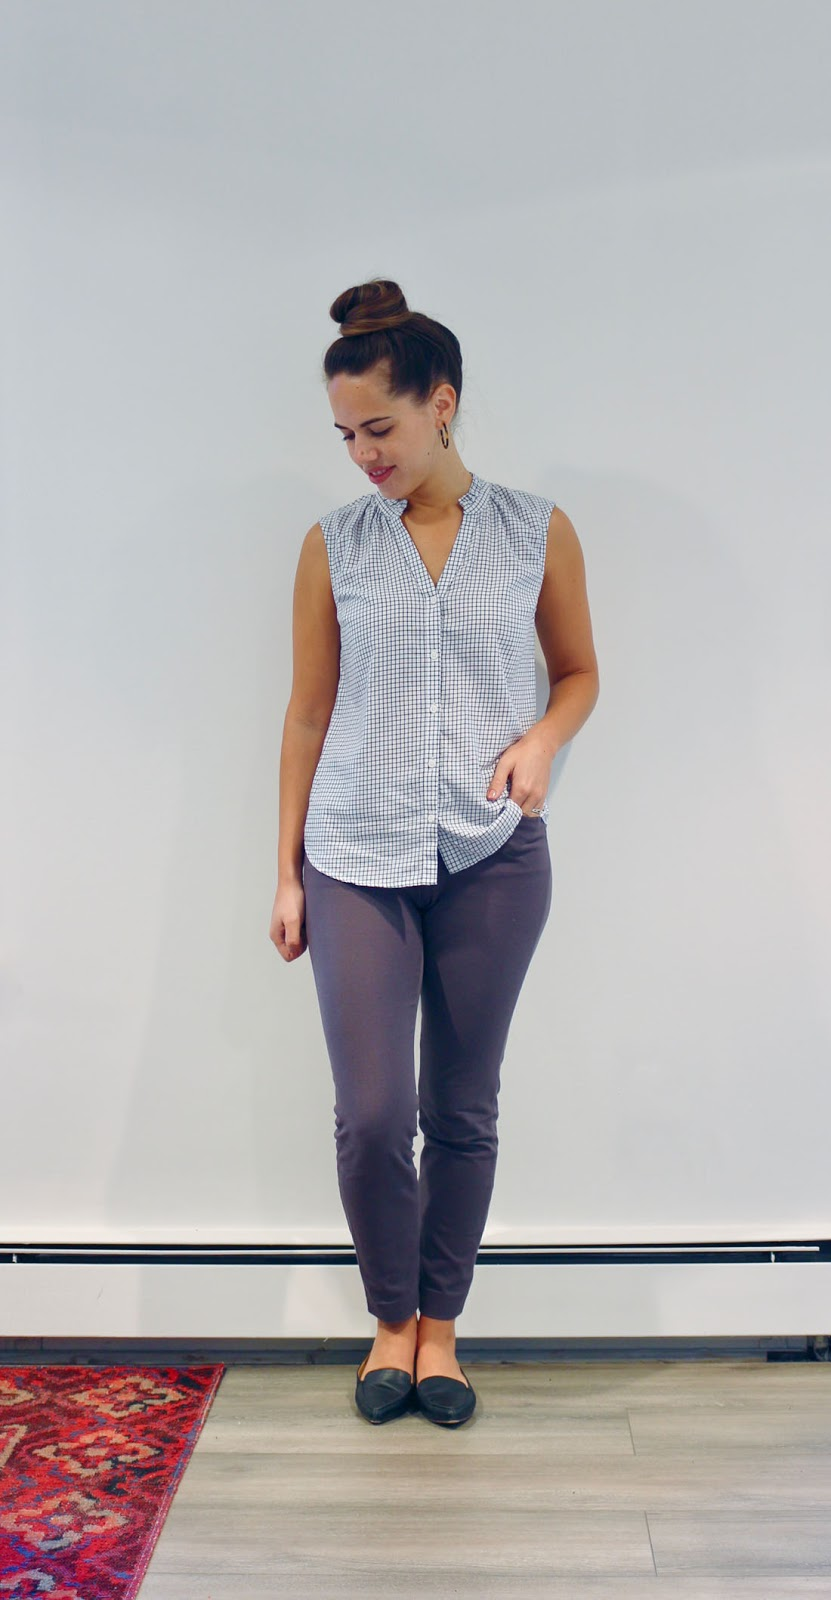 Jules in Flats -  Sleeveless Print Top with Grey Ankle Pants (Business Casual Summer Workwear on a Budget)